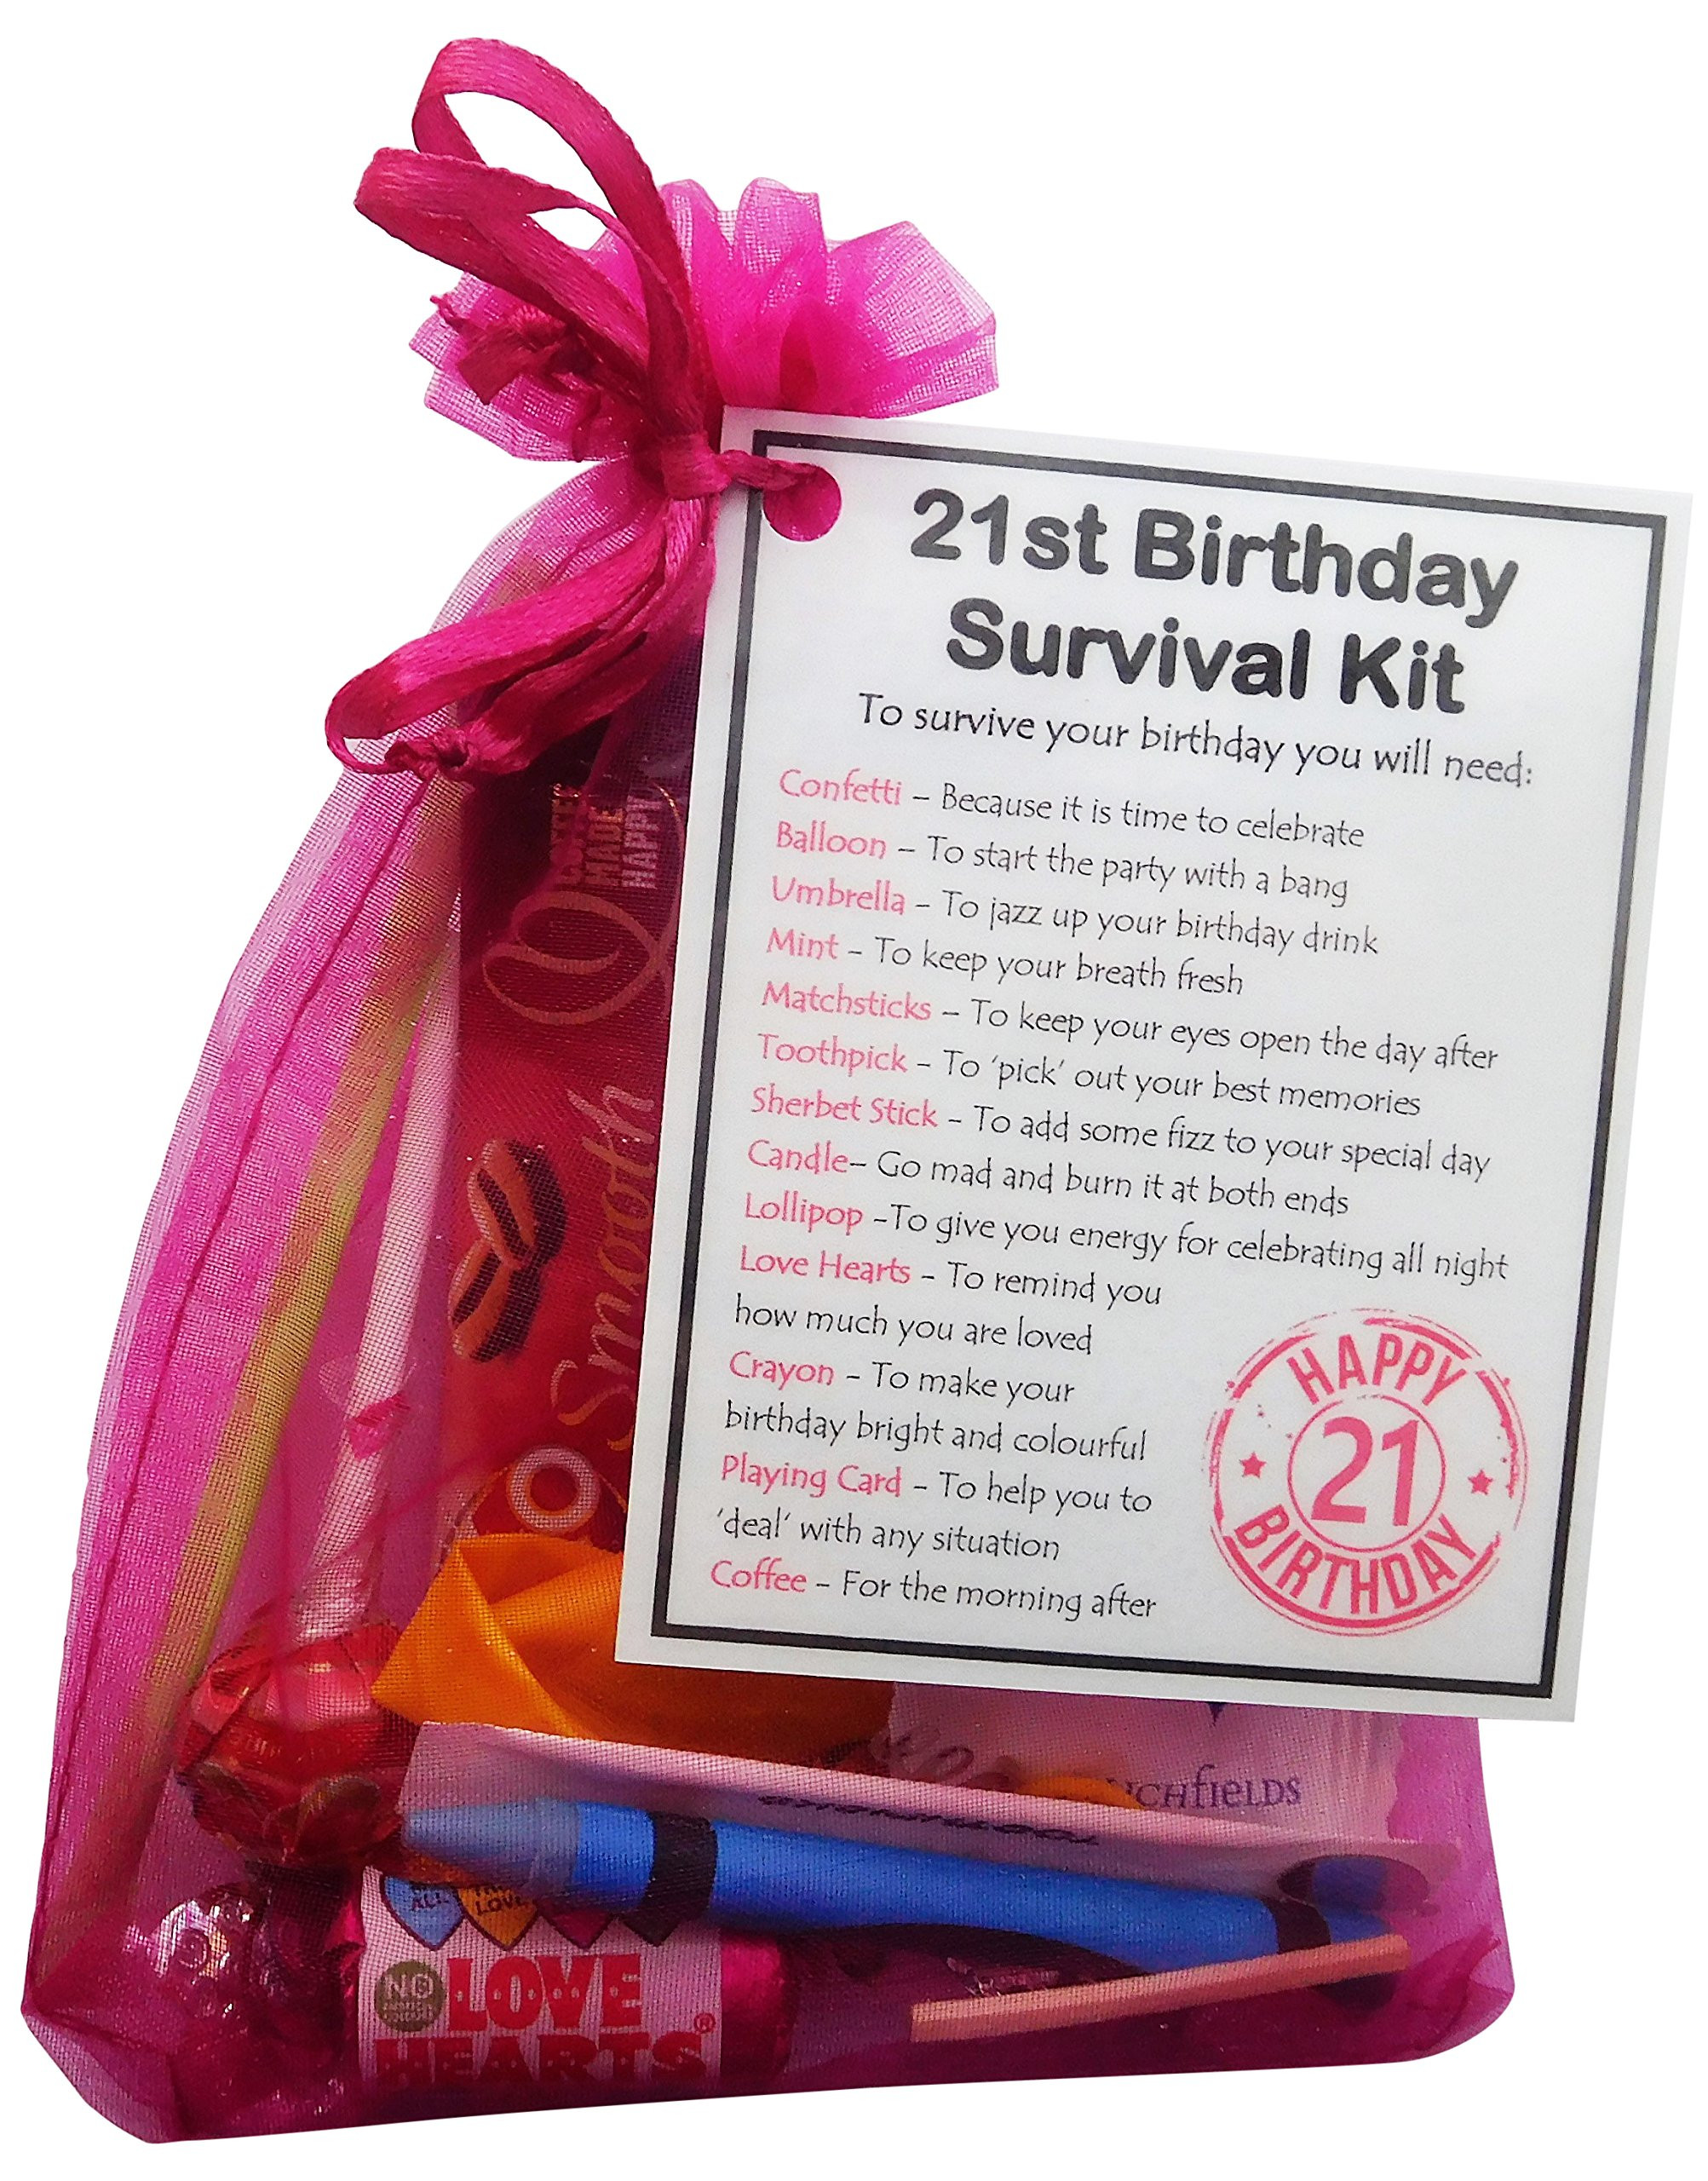 Top Birthday Gifts For Her  21st Birthday Gifts for Her Keepsake Amazon